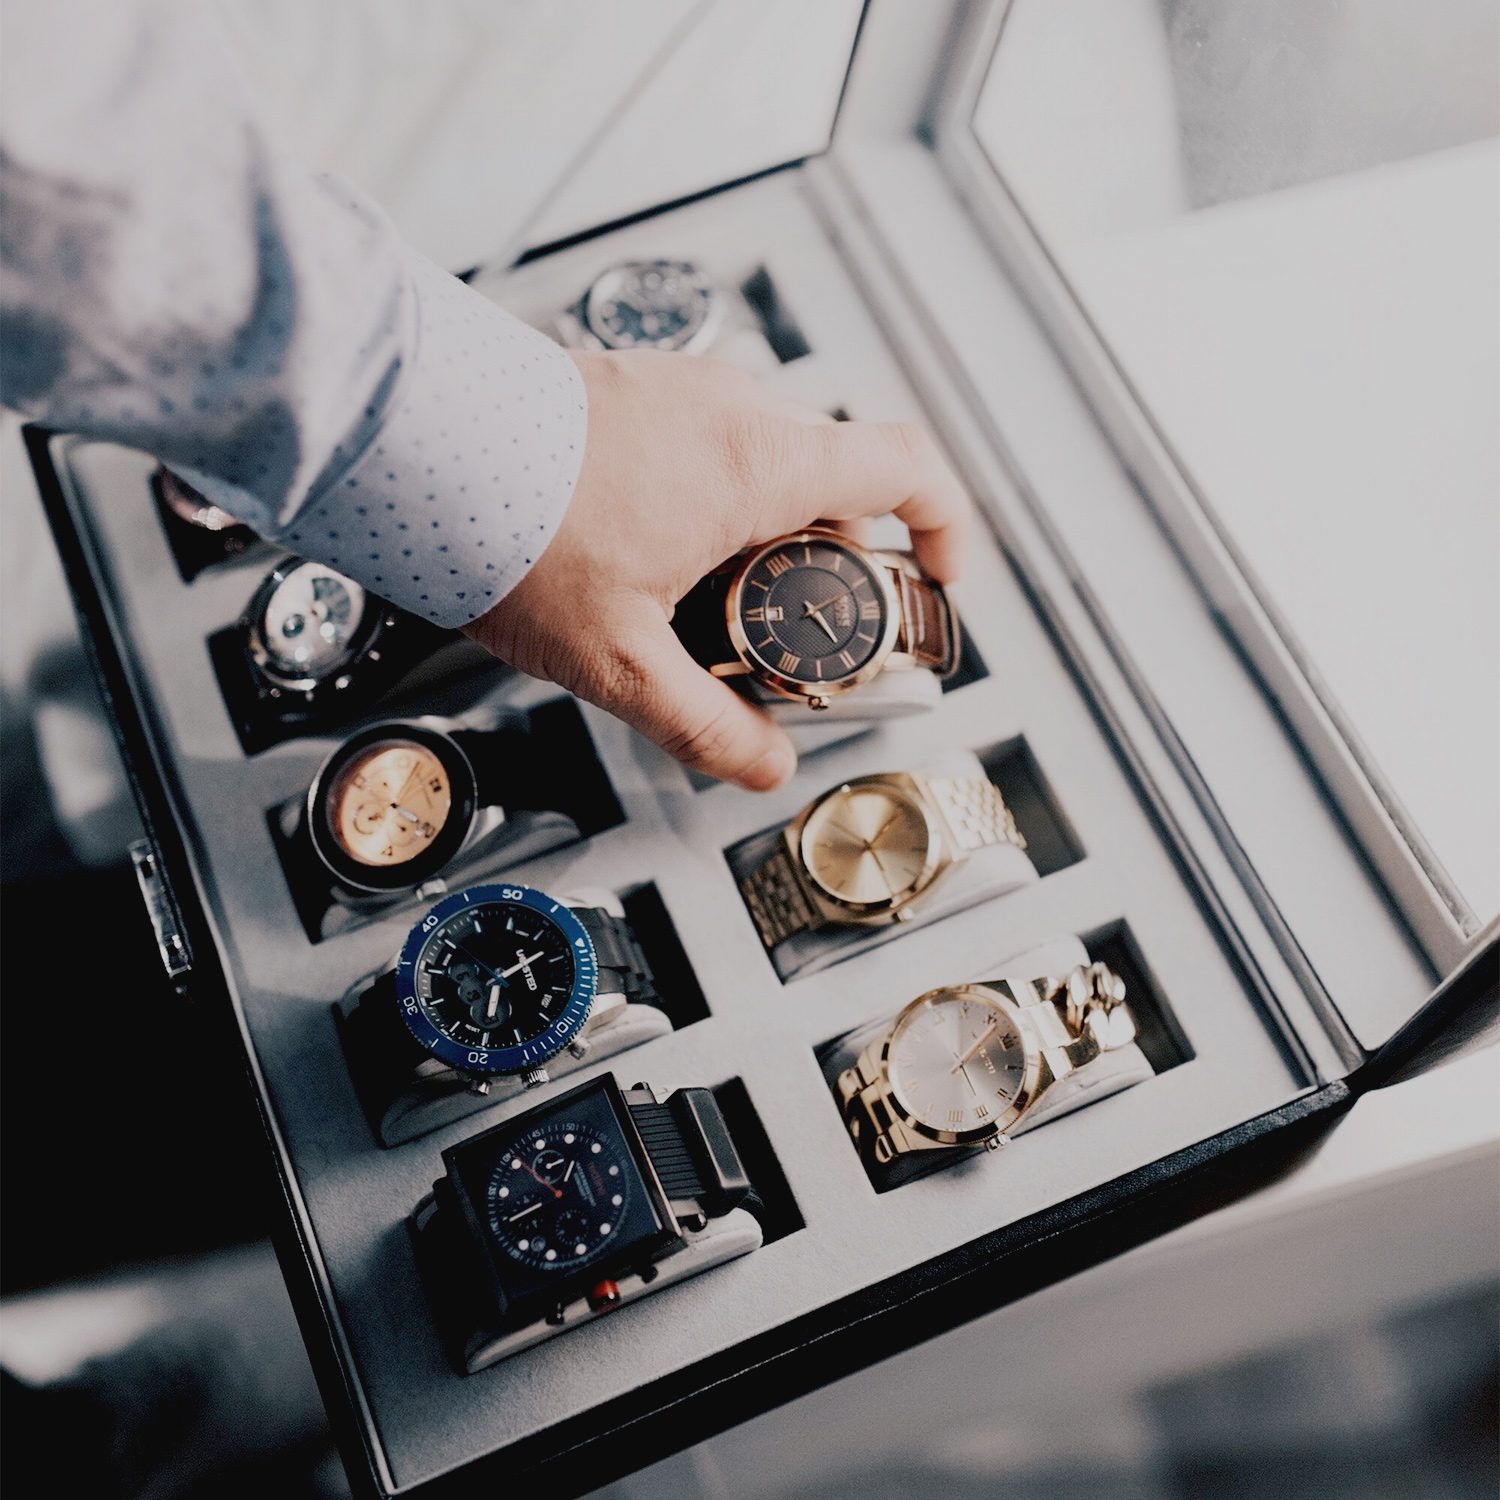 case_collection_watch_wrist_businessman_Photo-by-Hugo-Filipe-from-Pexels_inlinephotography_square.jpg